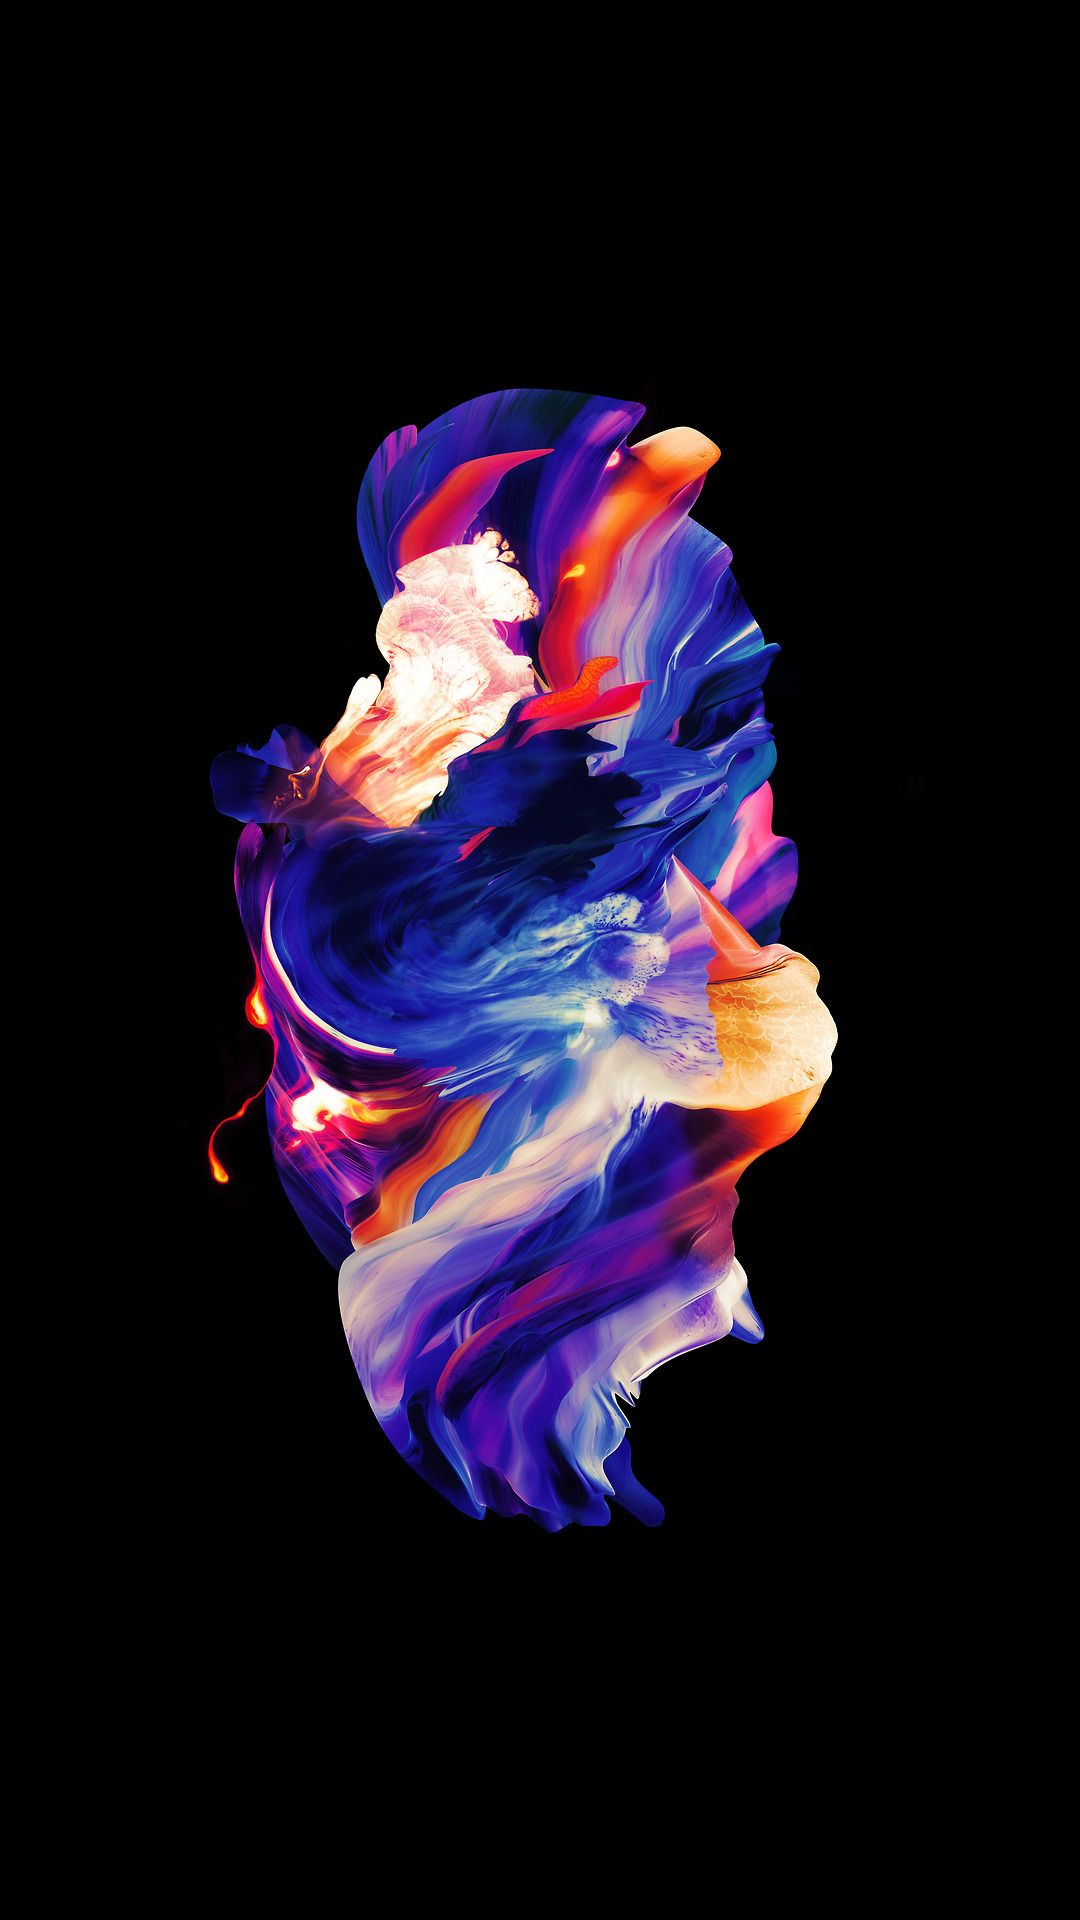 Oneplus 5 Wallpapers Amoled Black Edit 4k 2160x3840 Shared By